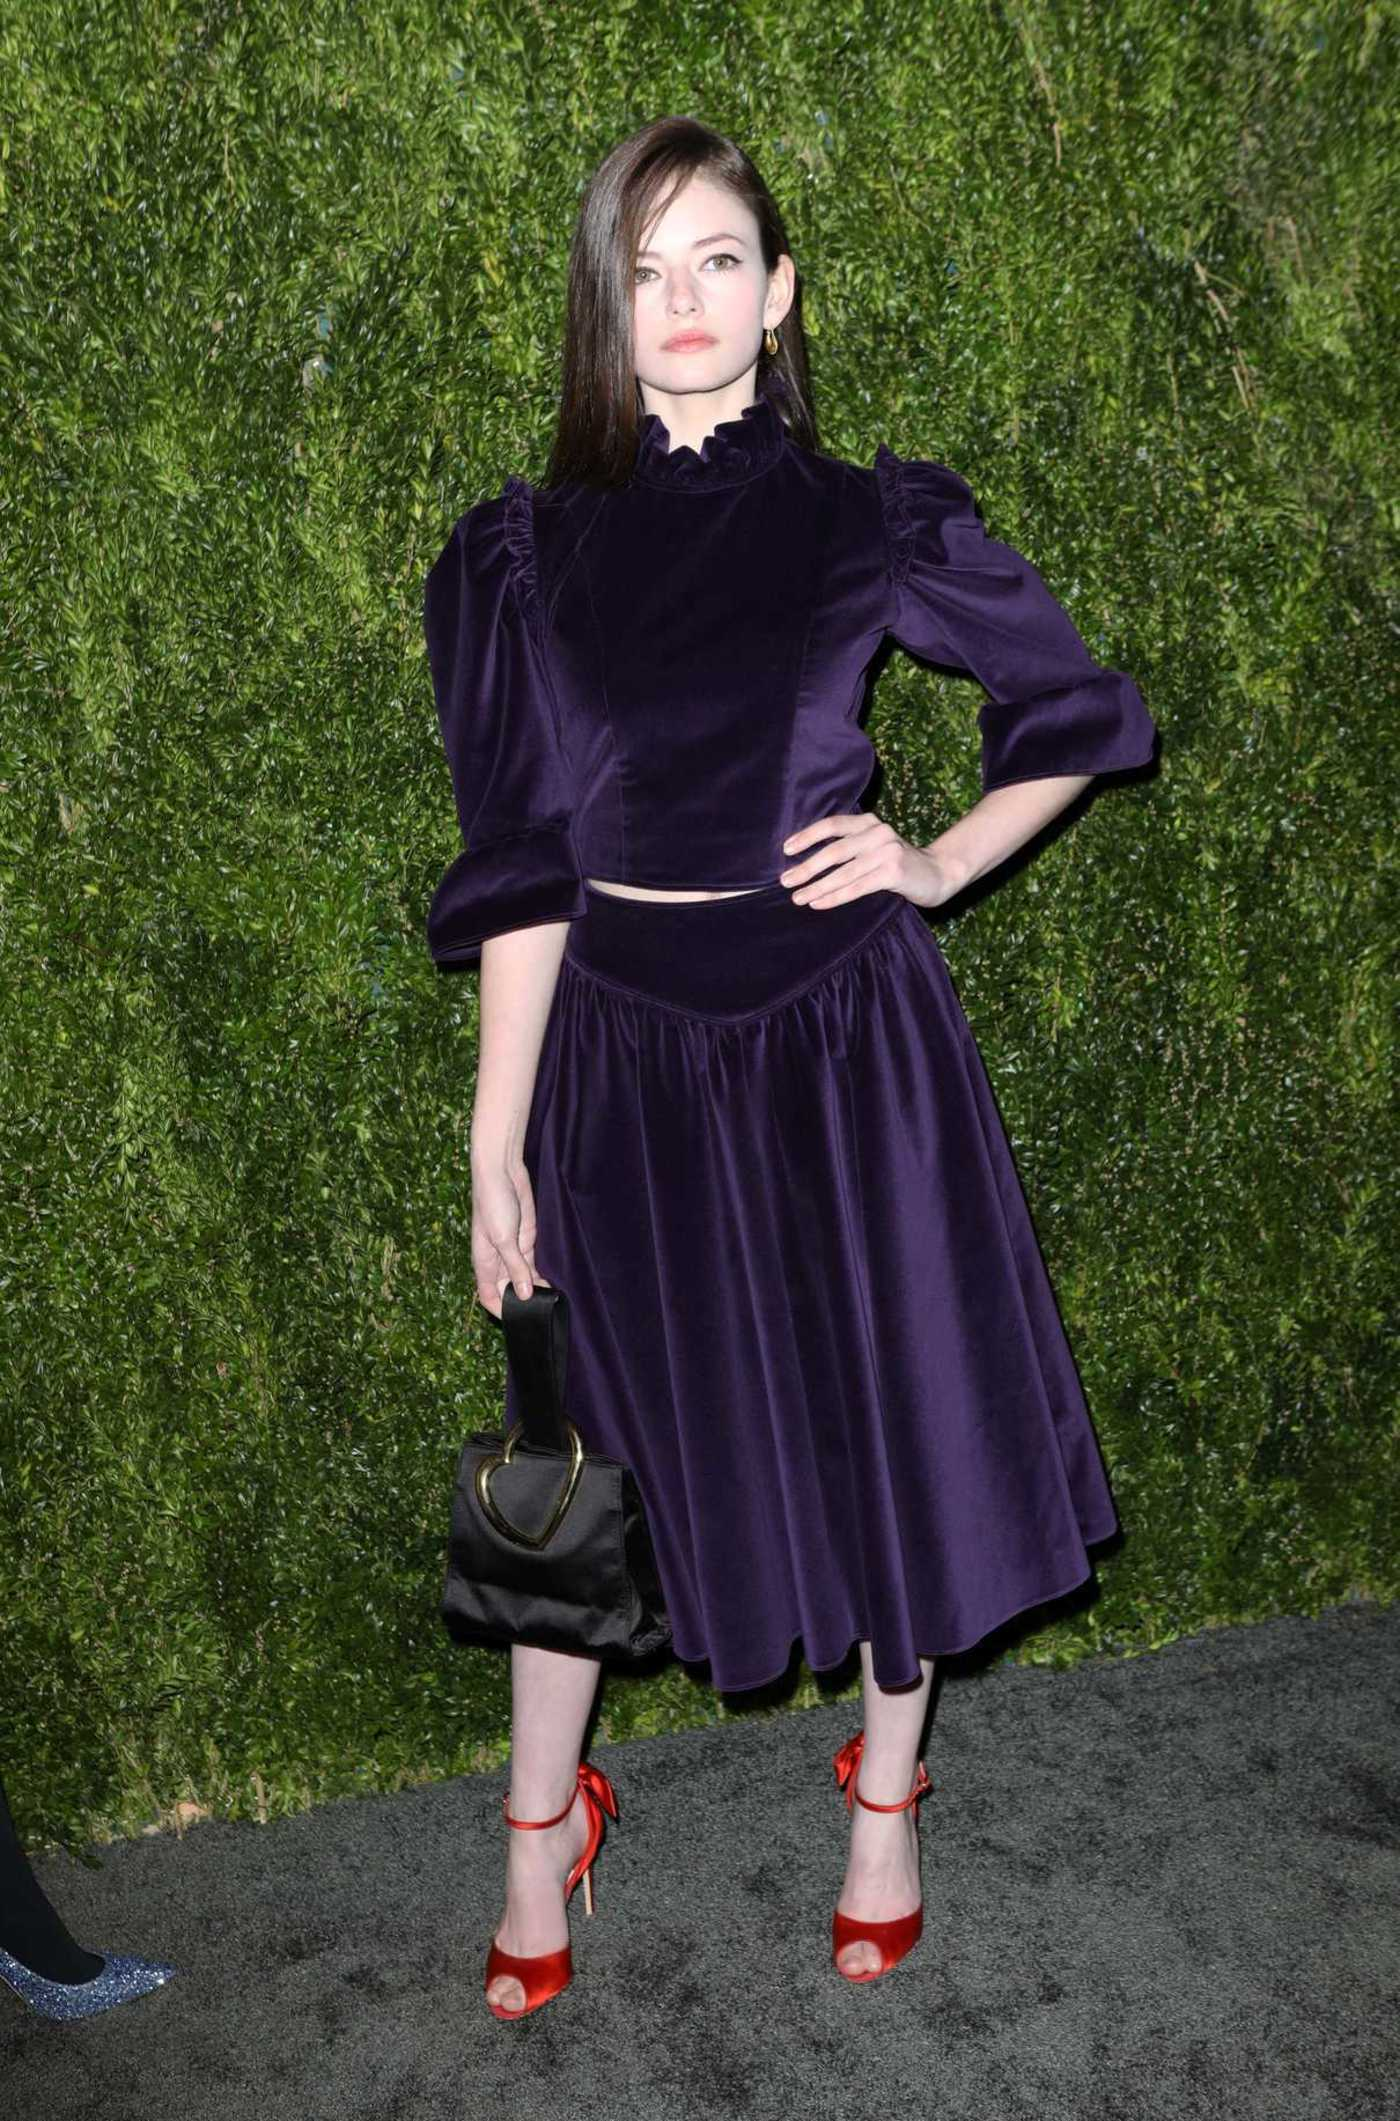 Mackenzie Foy Attends CFDA Vogue Fashion Fund 15th Anniversary Awards in NYC 11/05/2018